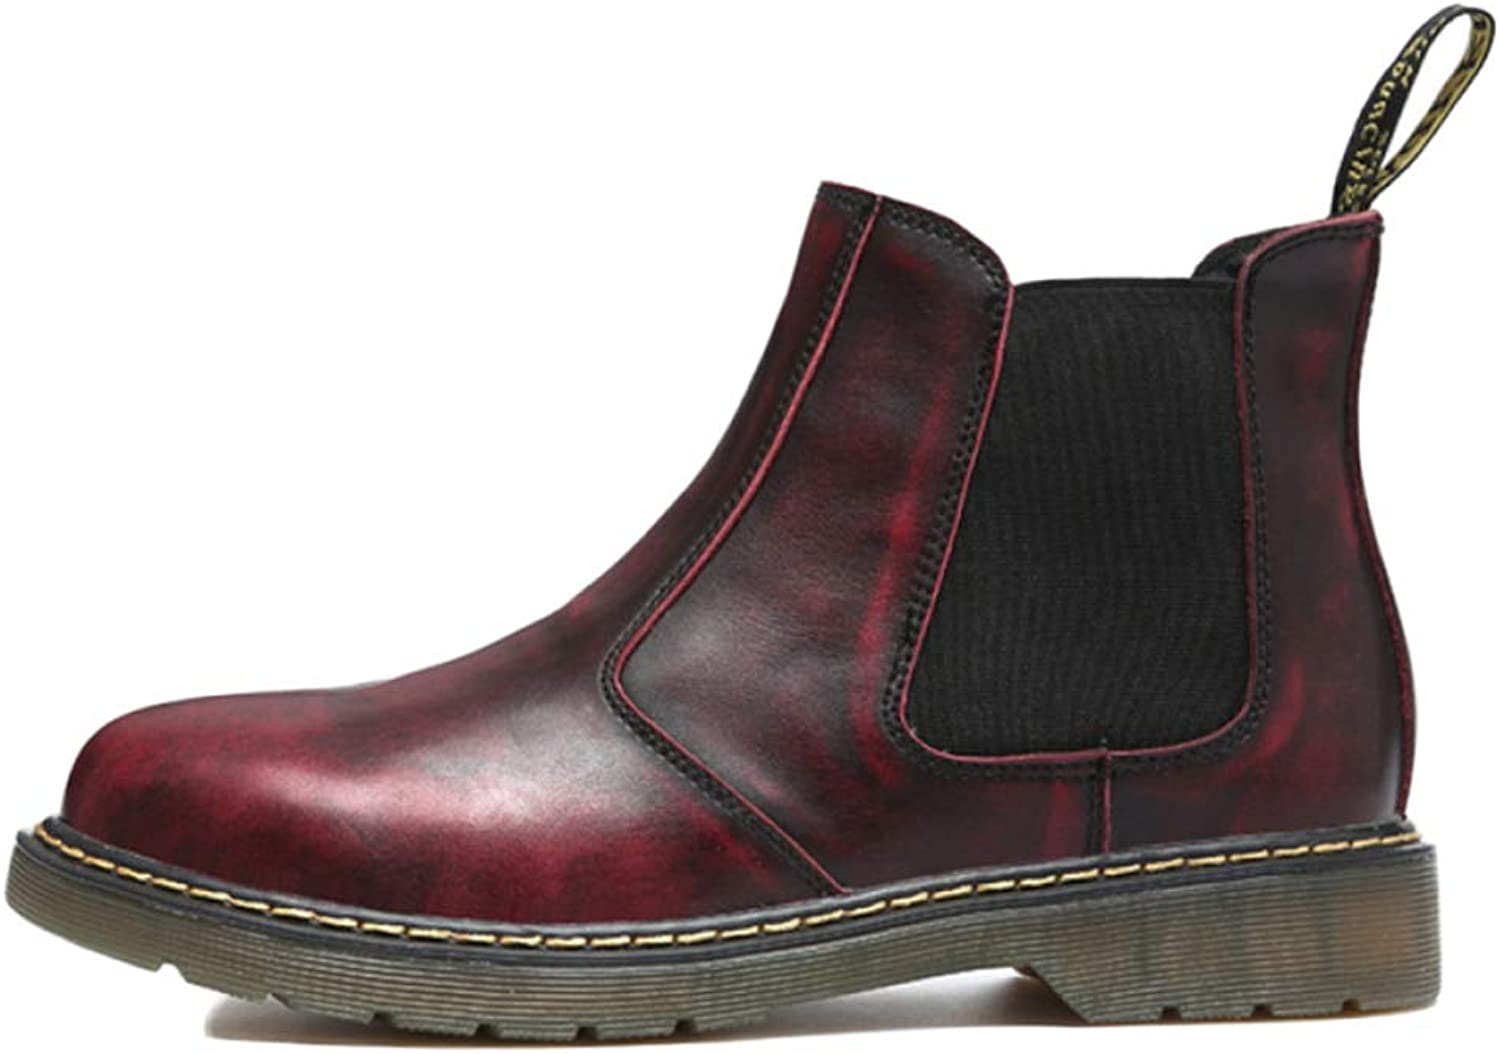 Men's Boots Chelsea Boots Leather Oxblood Safety Brogue Classic Martin Boots Vintage Boots